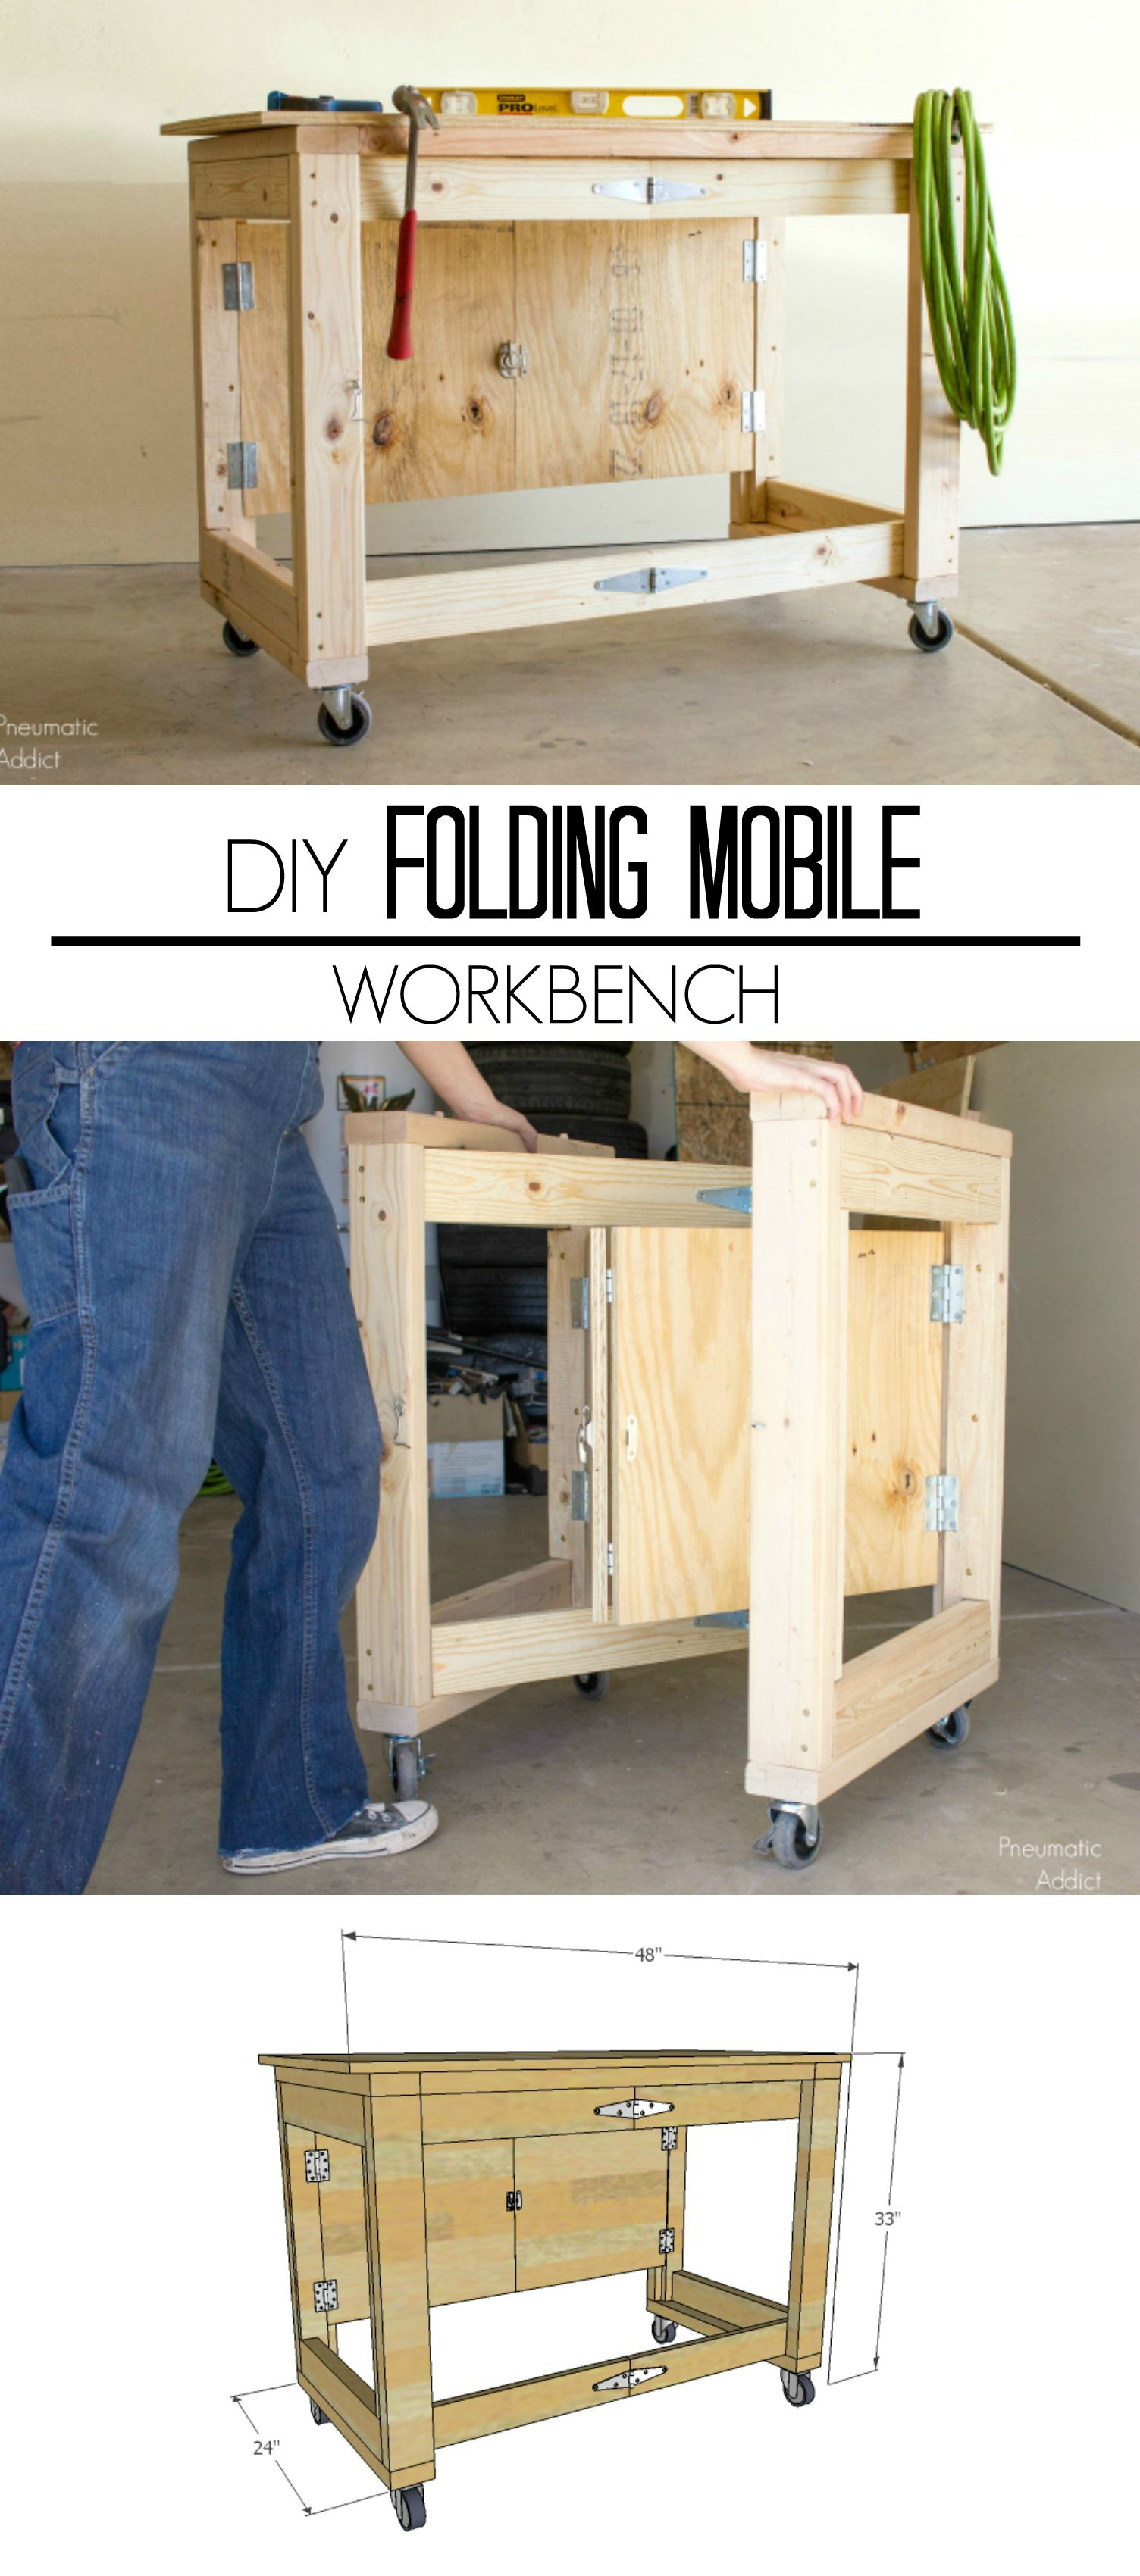 Learn How To Make An Easy Inexpensive Folding Mobile Workbench